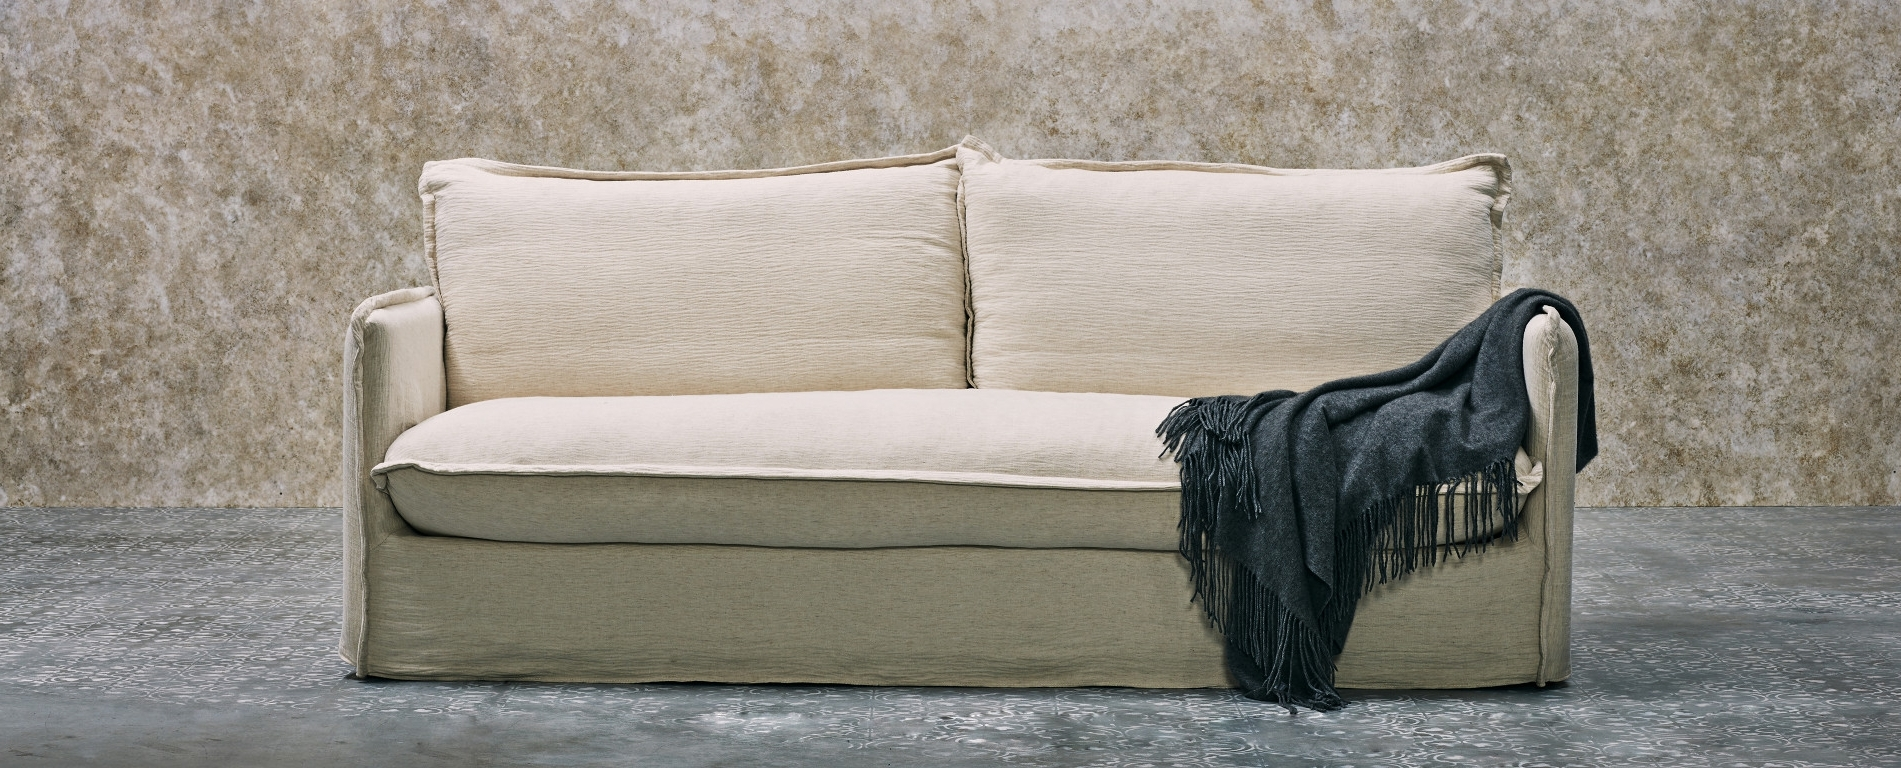 Feather Filled Sofa W/ Pillow Style Cushions (View 7 Of 20)